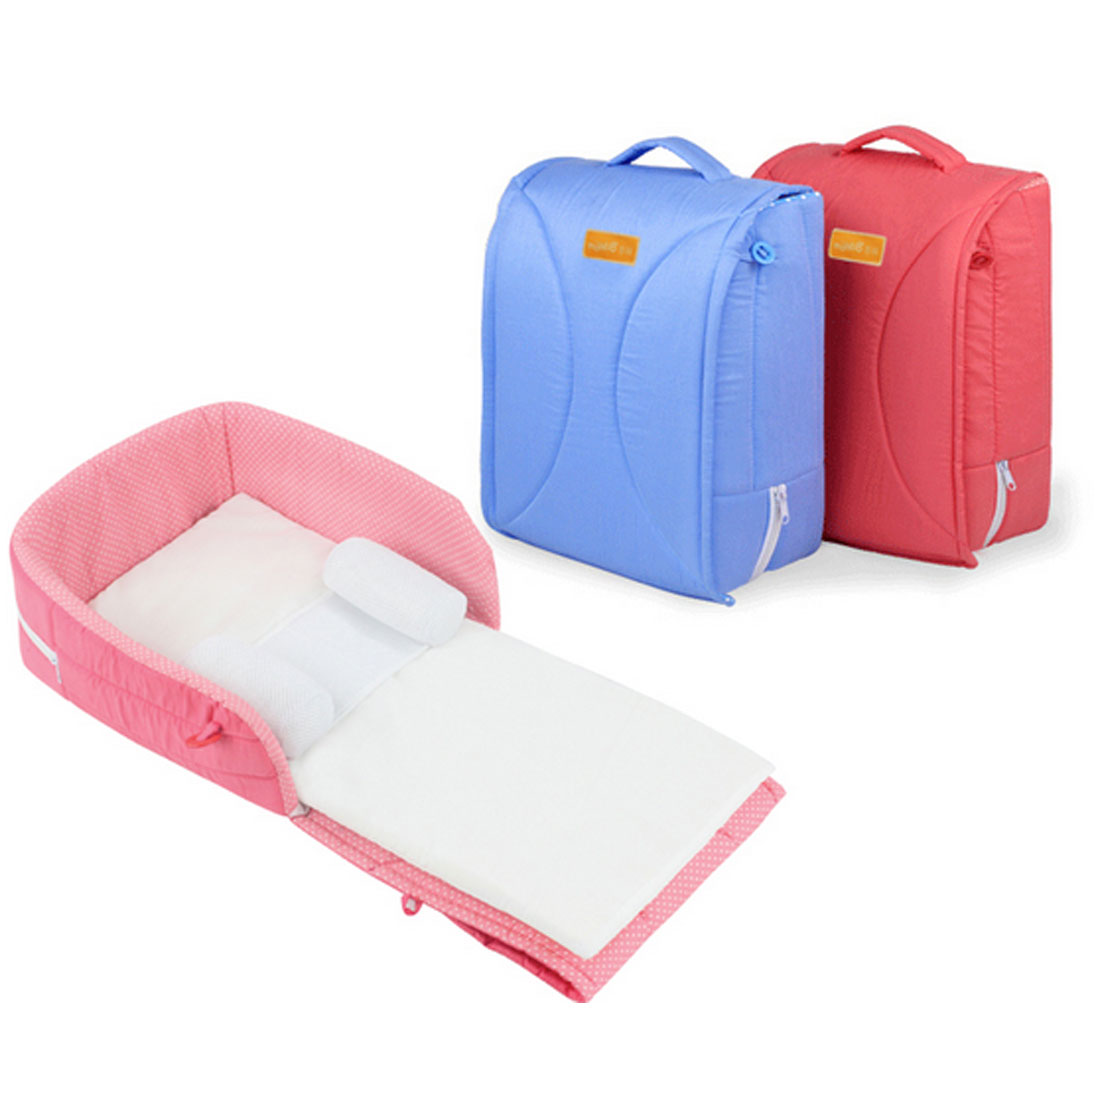 Baby bed portable - High Quality Portable Foldable Newborn Crib Combination Baby Travel Bed Removable Handbag Design Mattress With